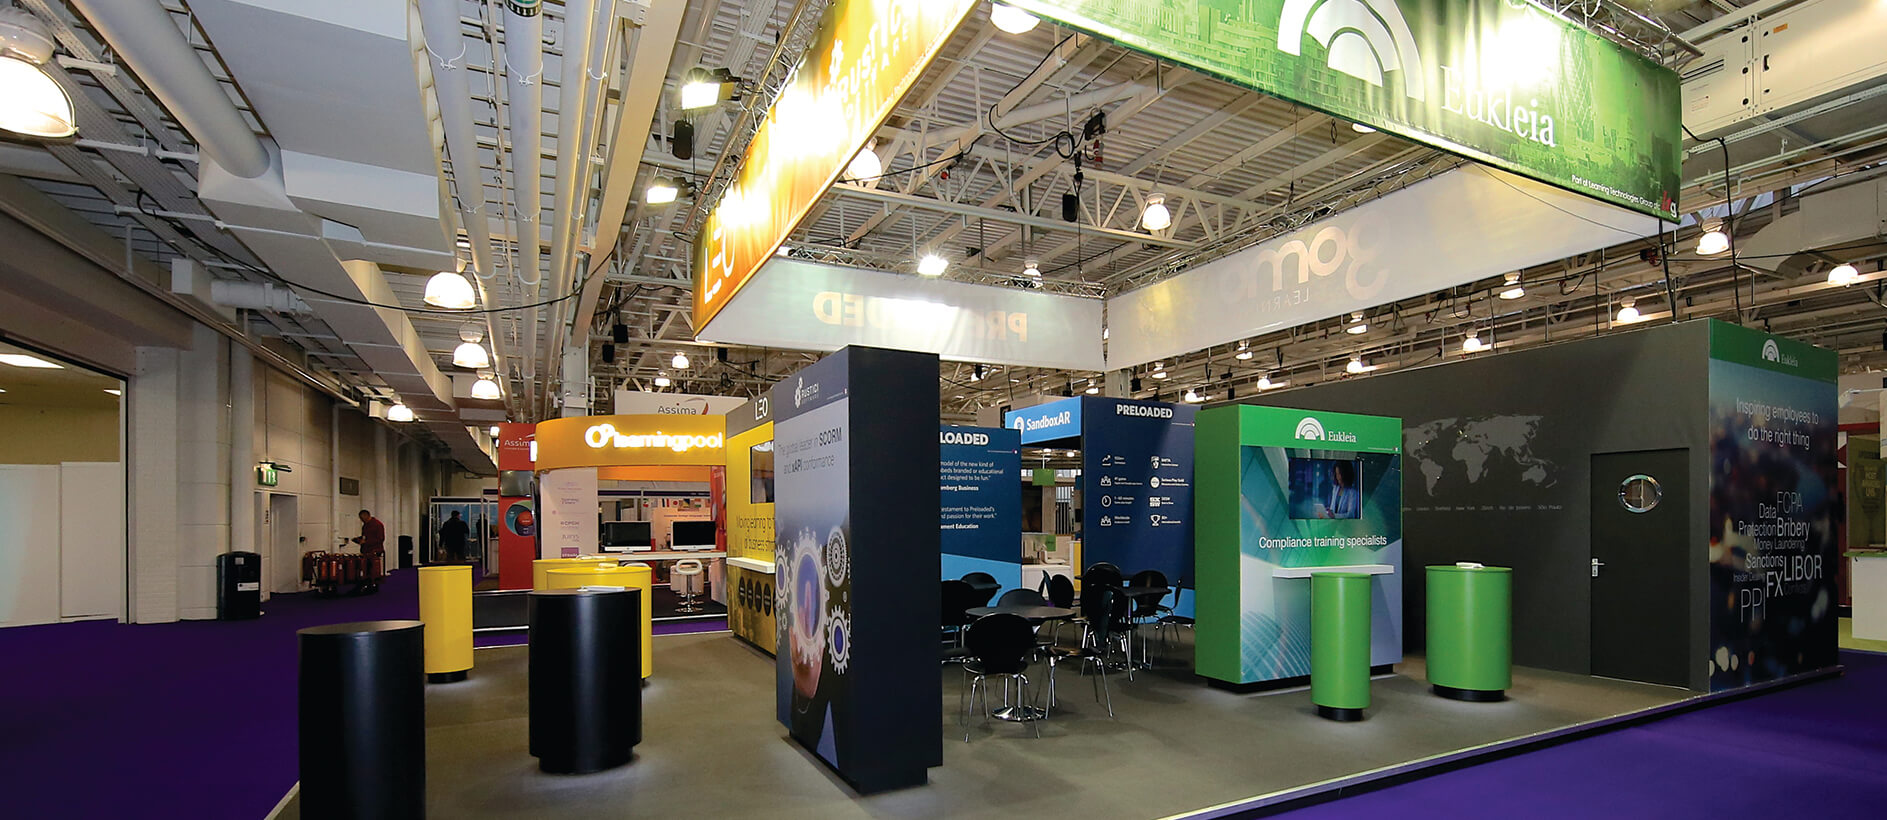 exhibition stand for Leo Learning by Exhibit 3Sixty